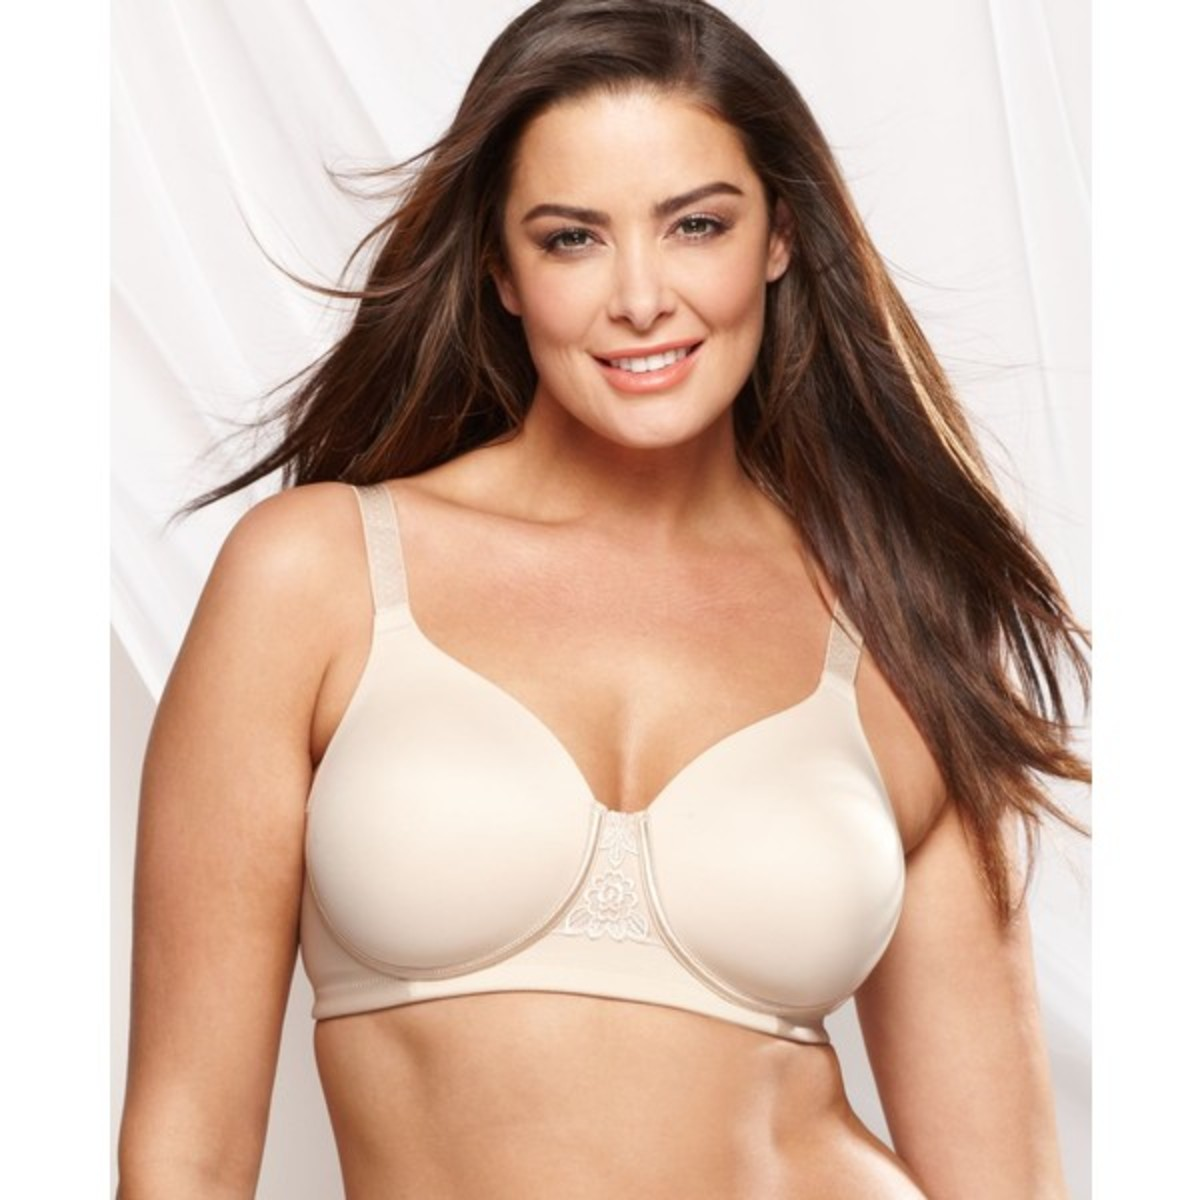 whats-the-best-minimizer-bra-with-lift-or-strapless-6-reviews